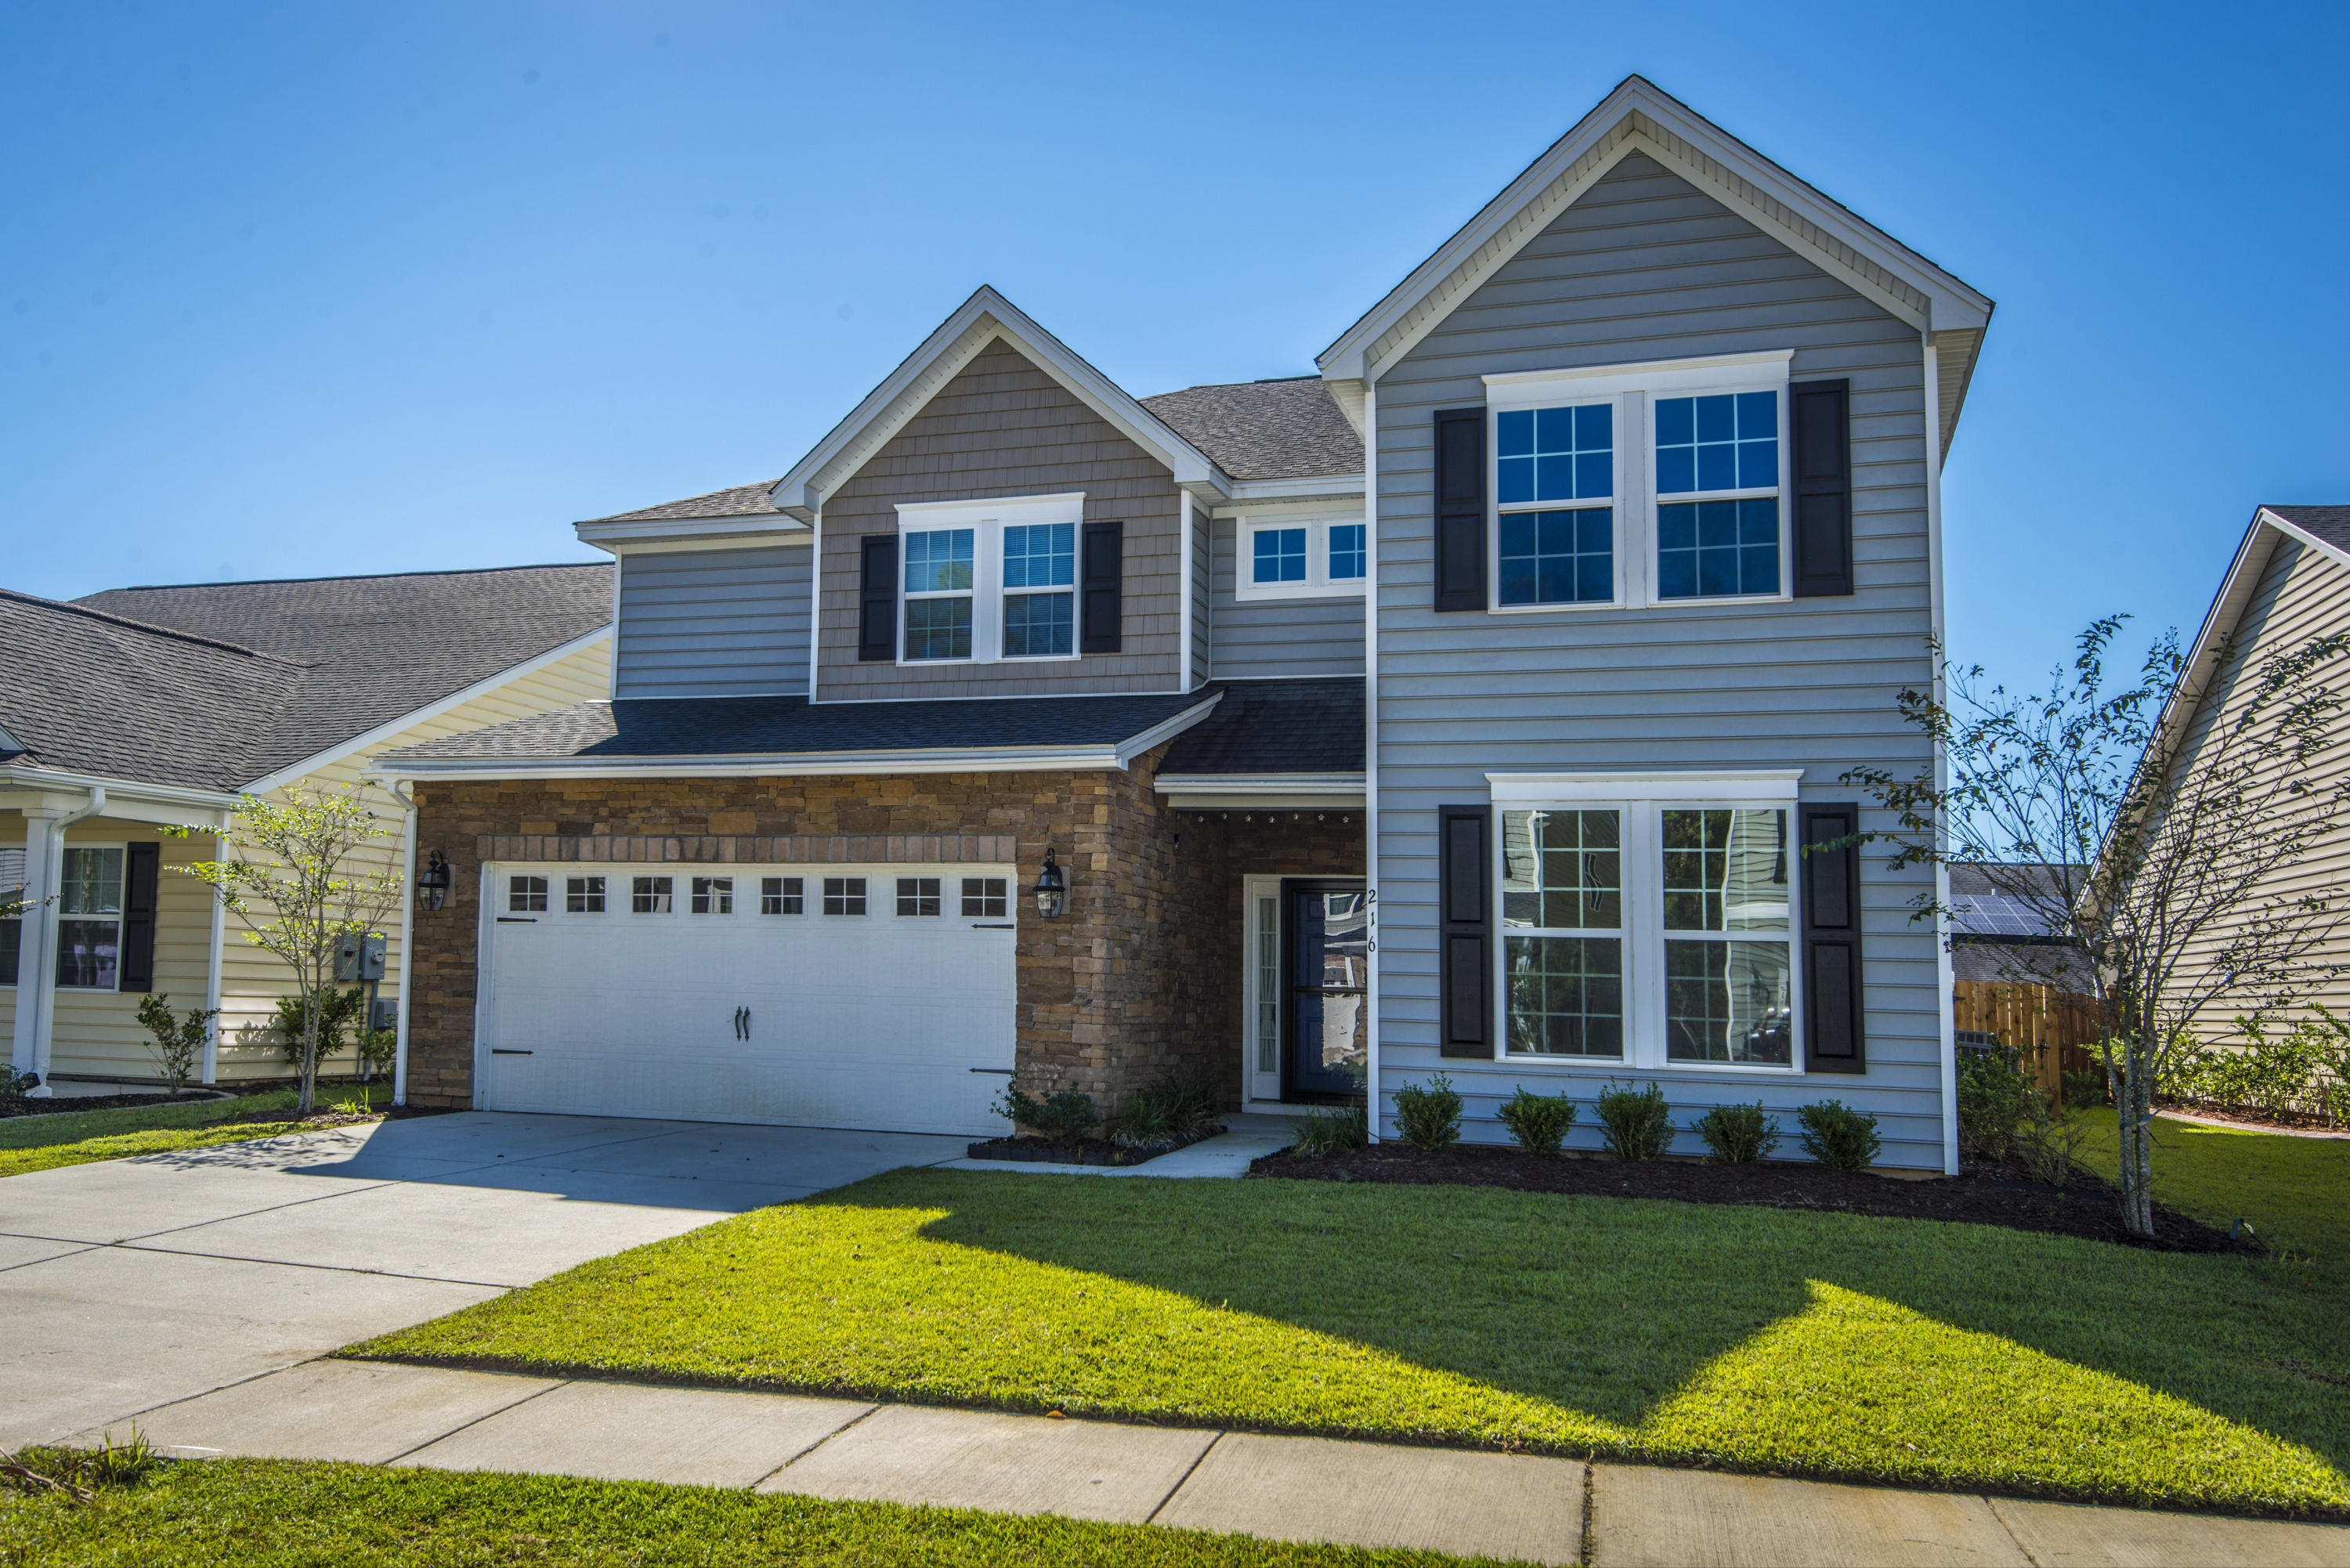 Wentworth Hall Homes For Sale - 216 Wexford, Summerville, SC - 9